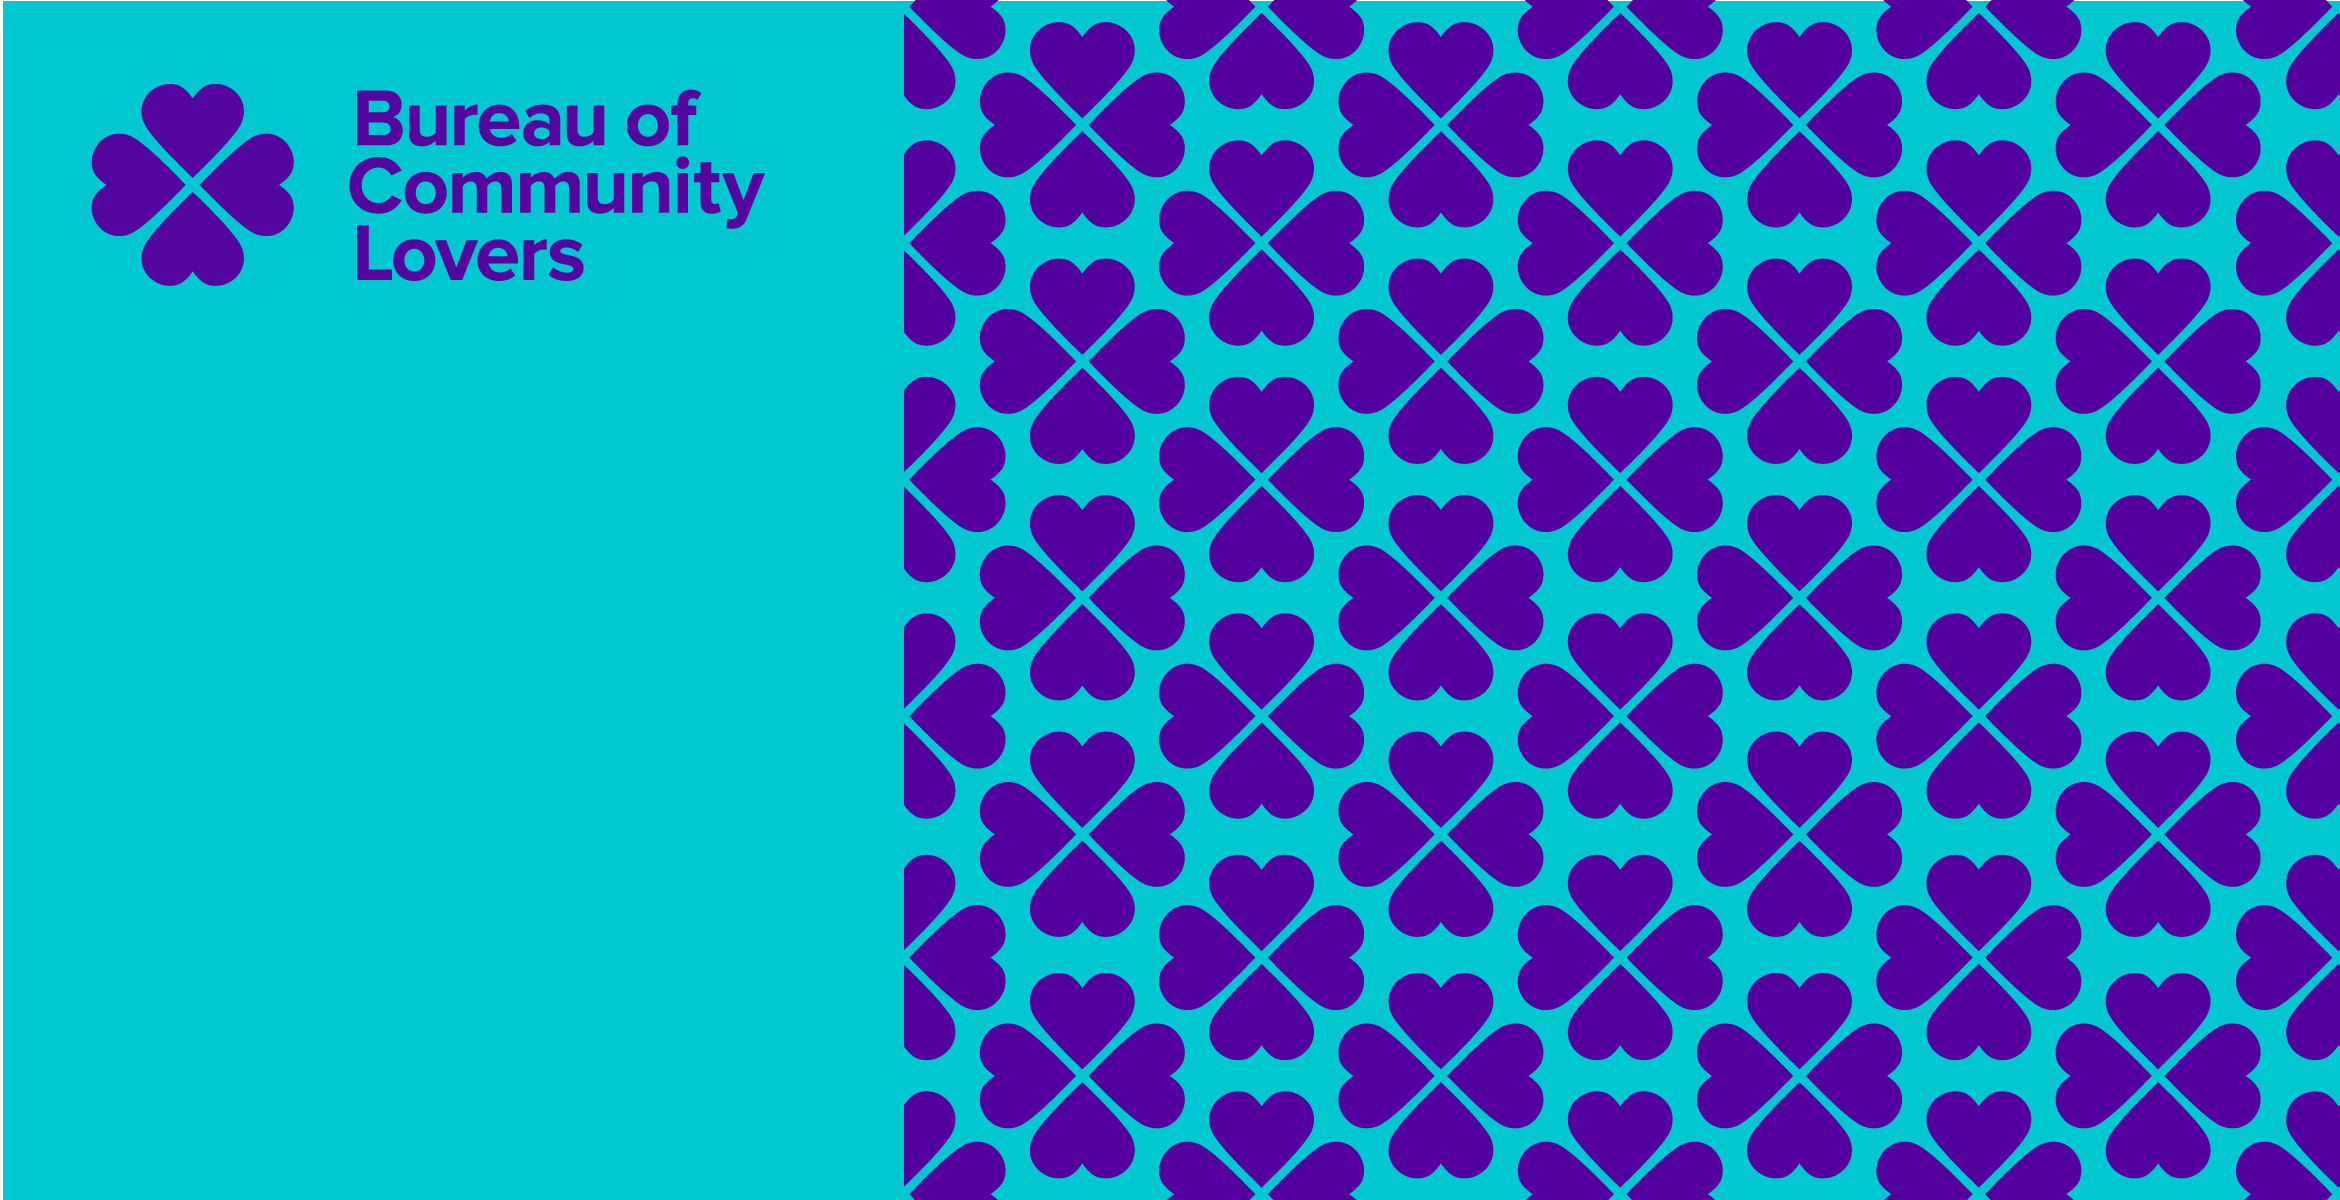 Bureau of Community Lovers logo with pattern next to it created from elements in the logo.